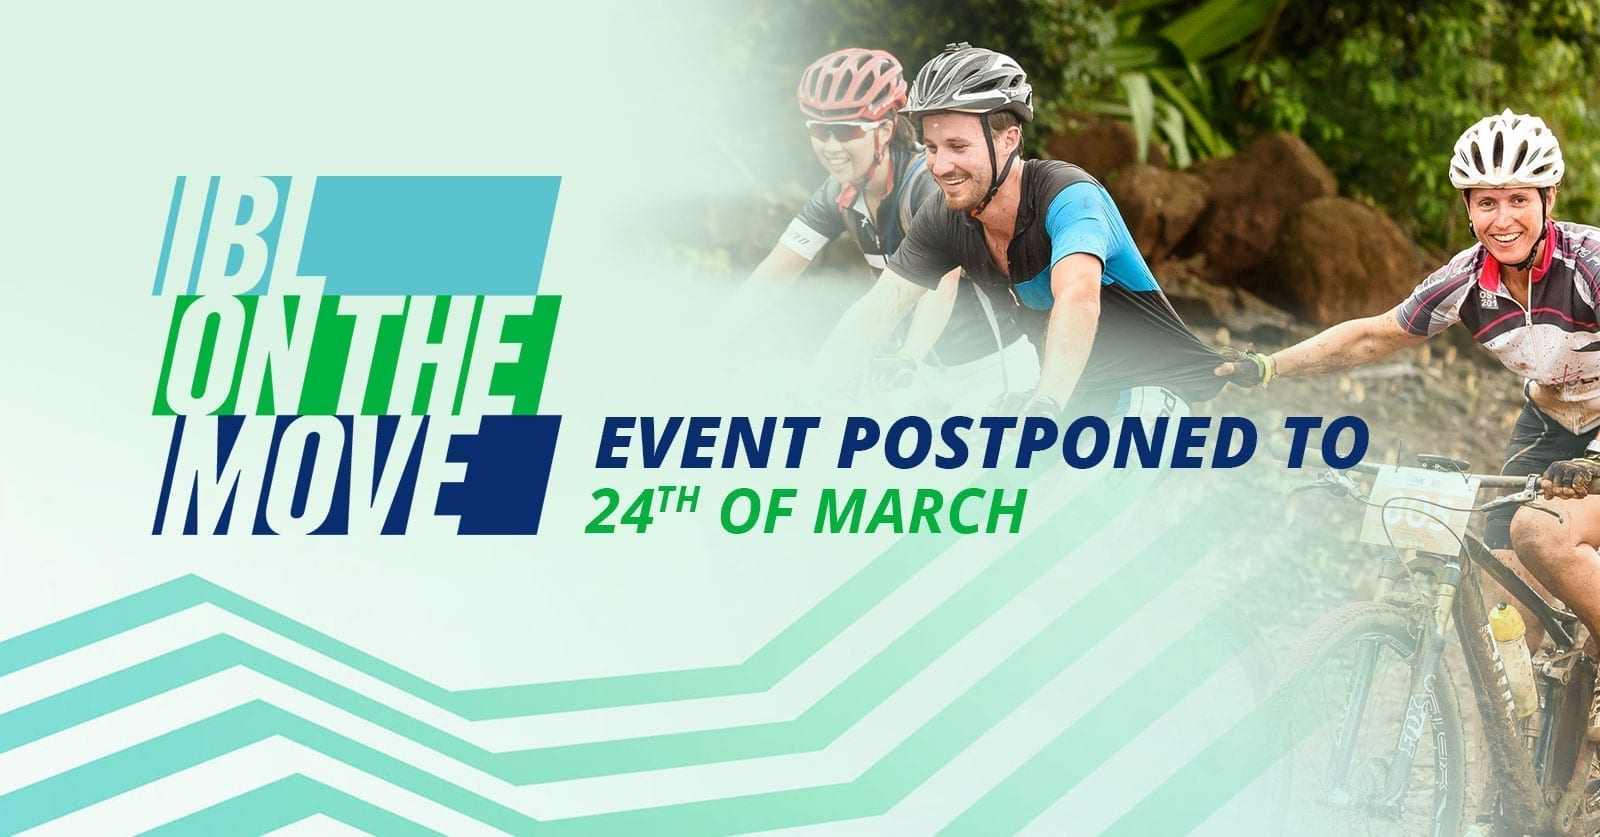 URGENT COMMUNIQUE – EVENT POSTPONED to 24th of March